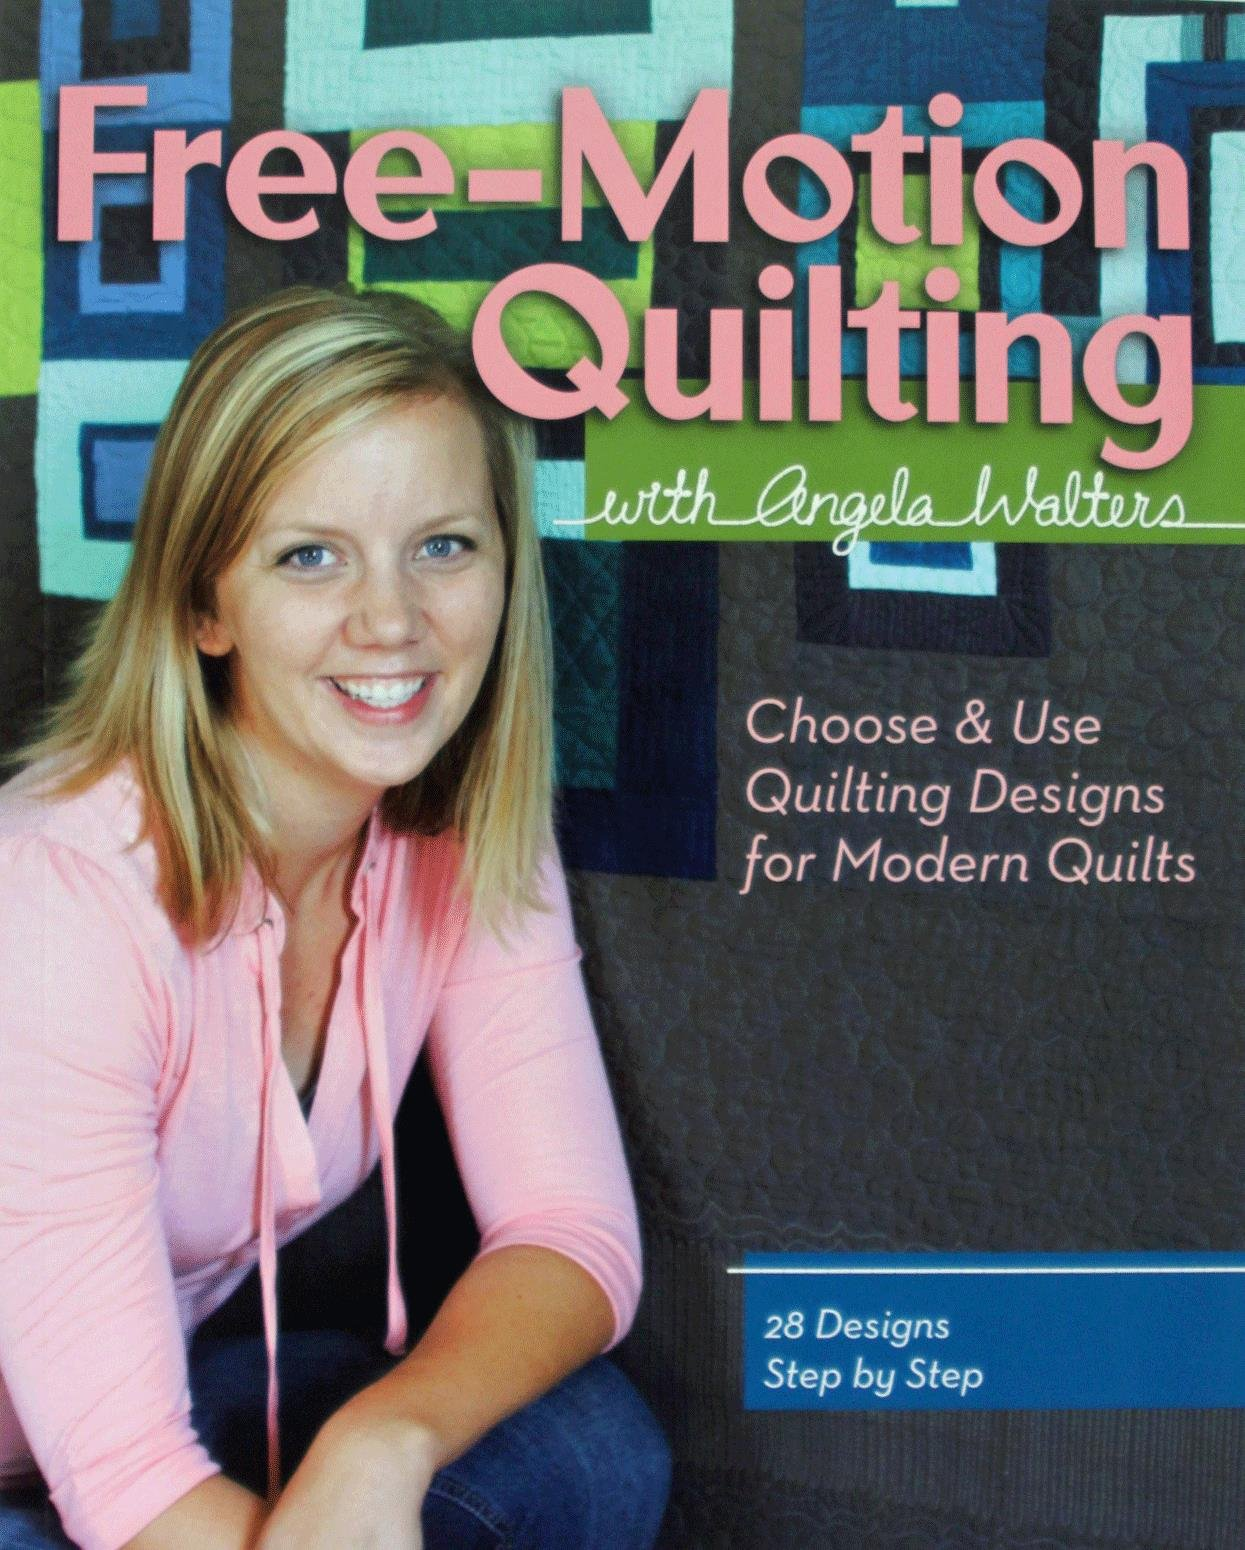 Free-Motion Quilting with Angela Walters Book